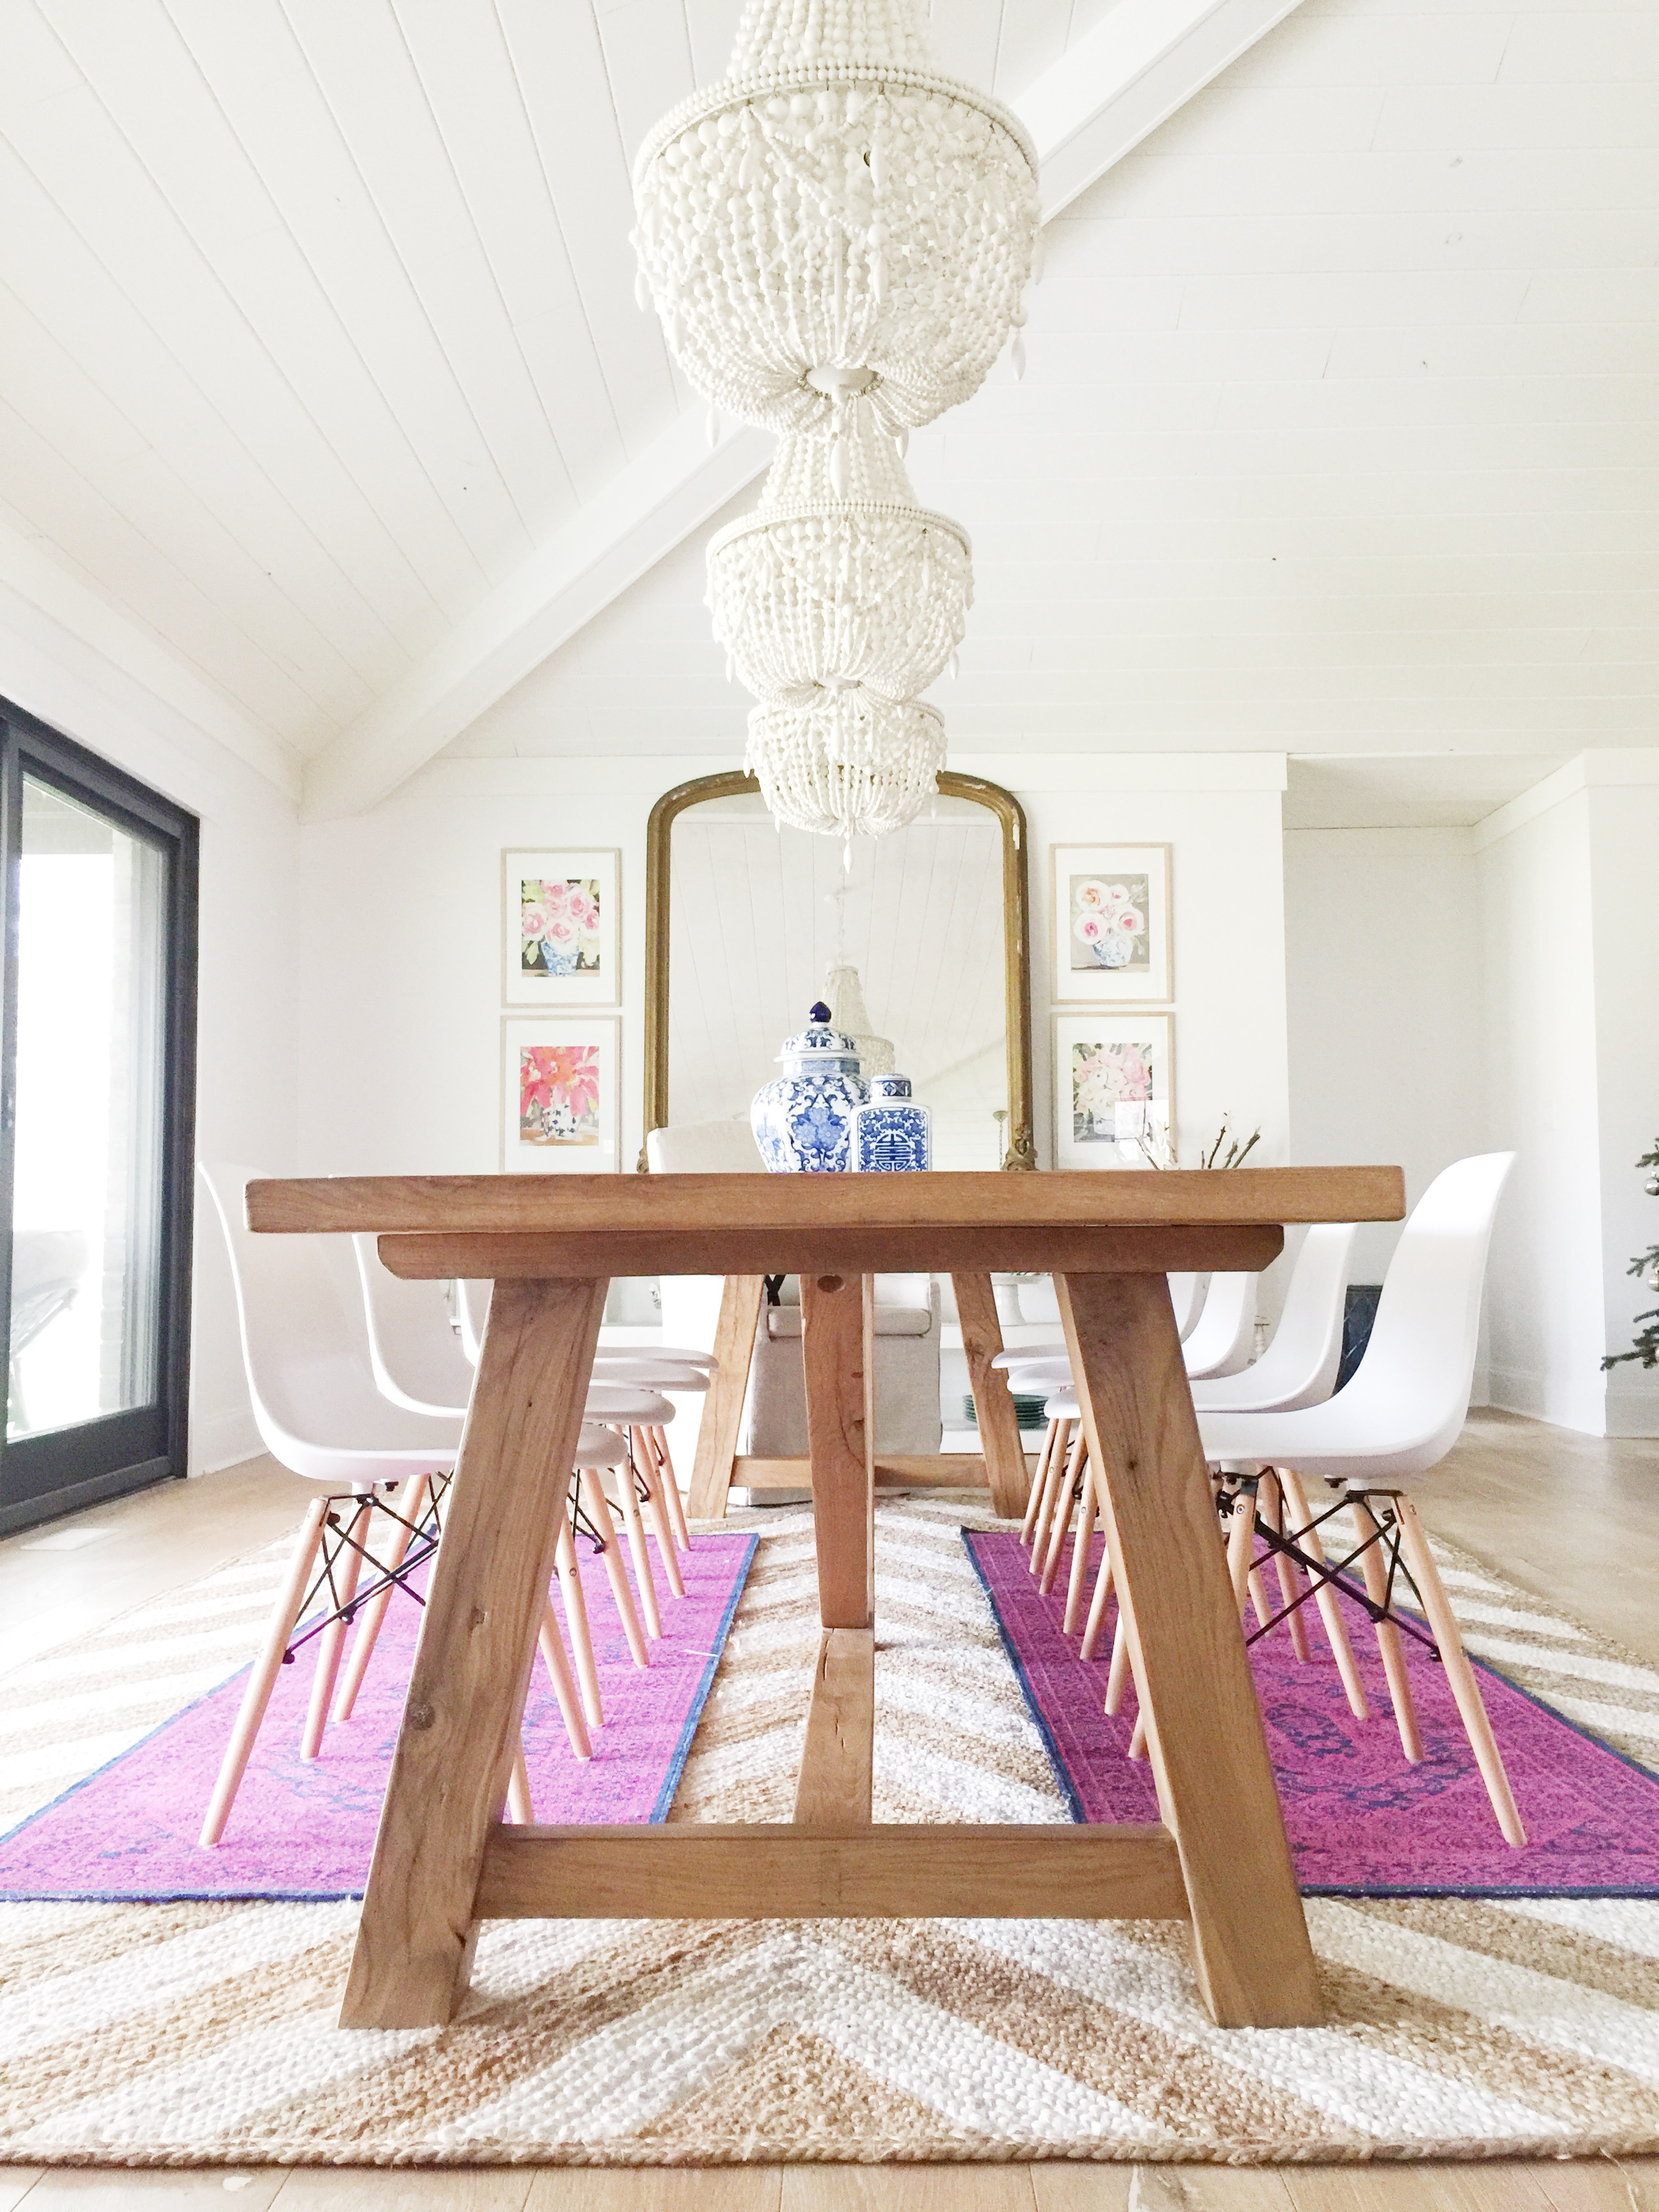 I Hope You Love It Farmhouse Table Modern Chairs Chandeliers Boho Kilim